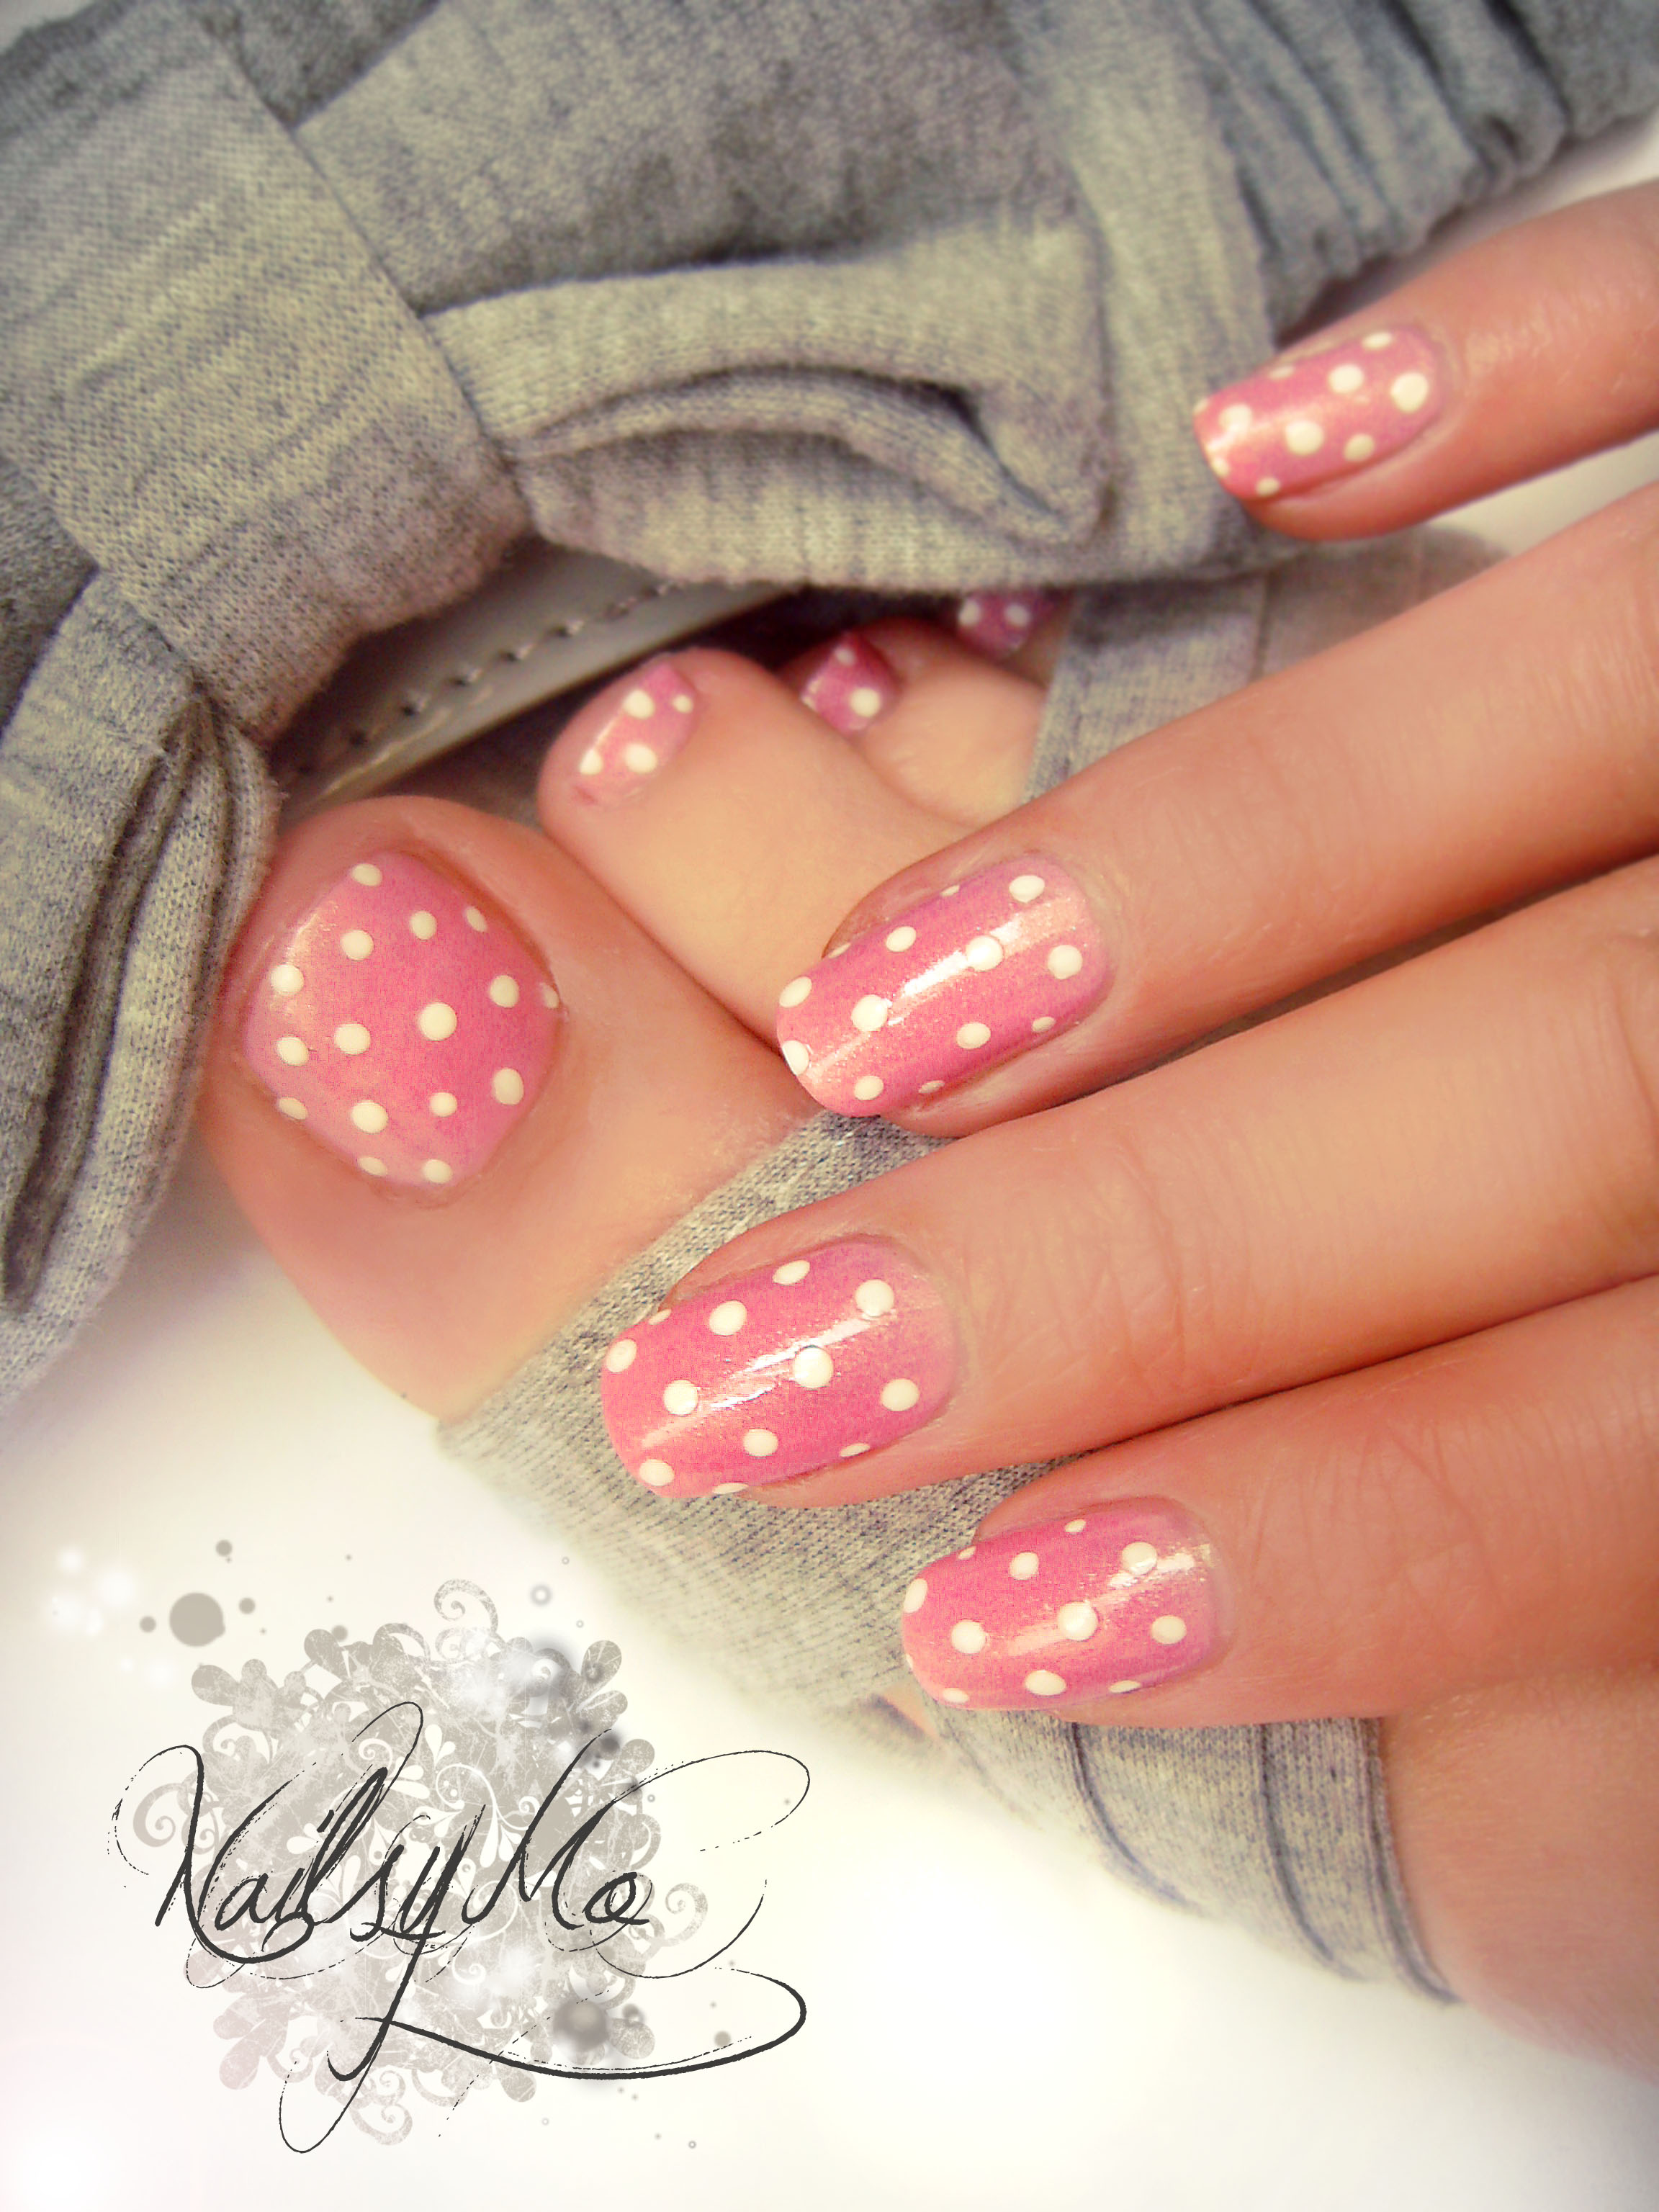 simply and girly, love it!